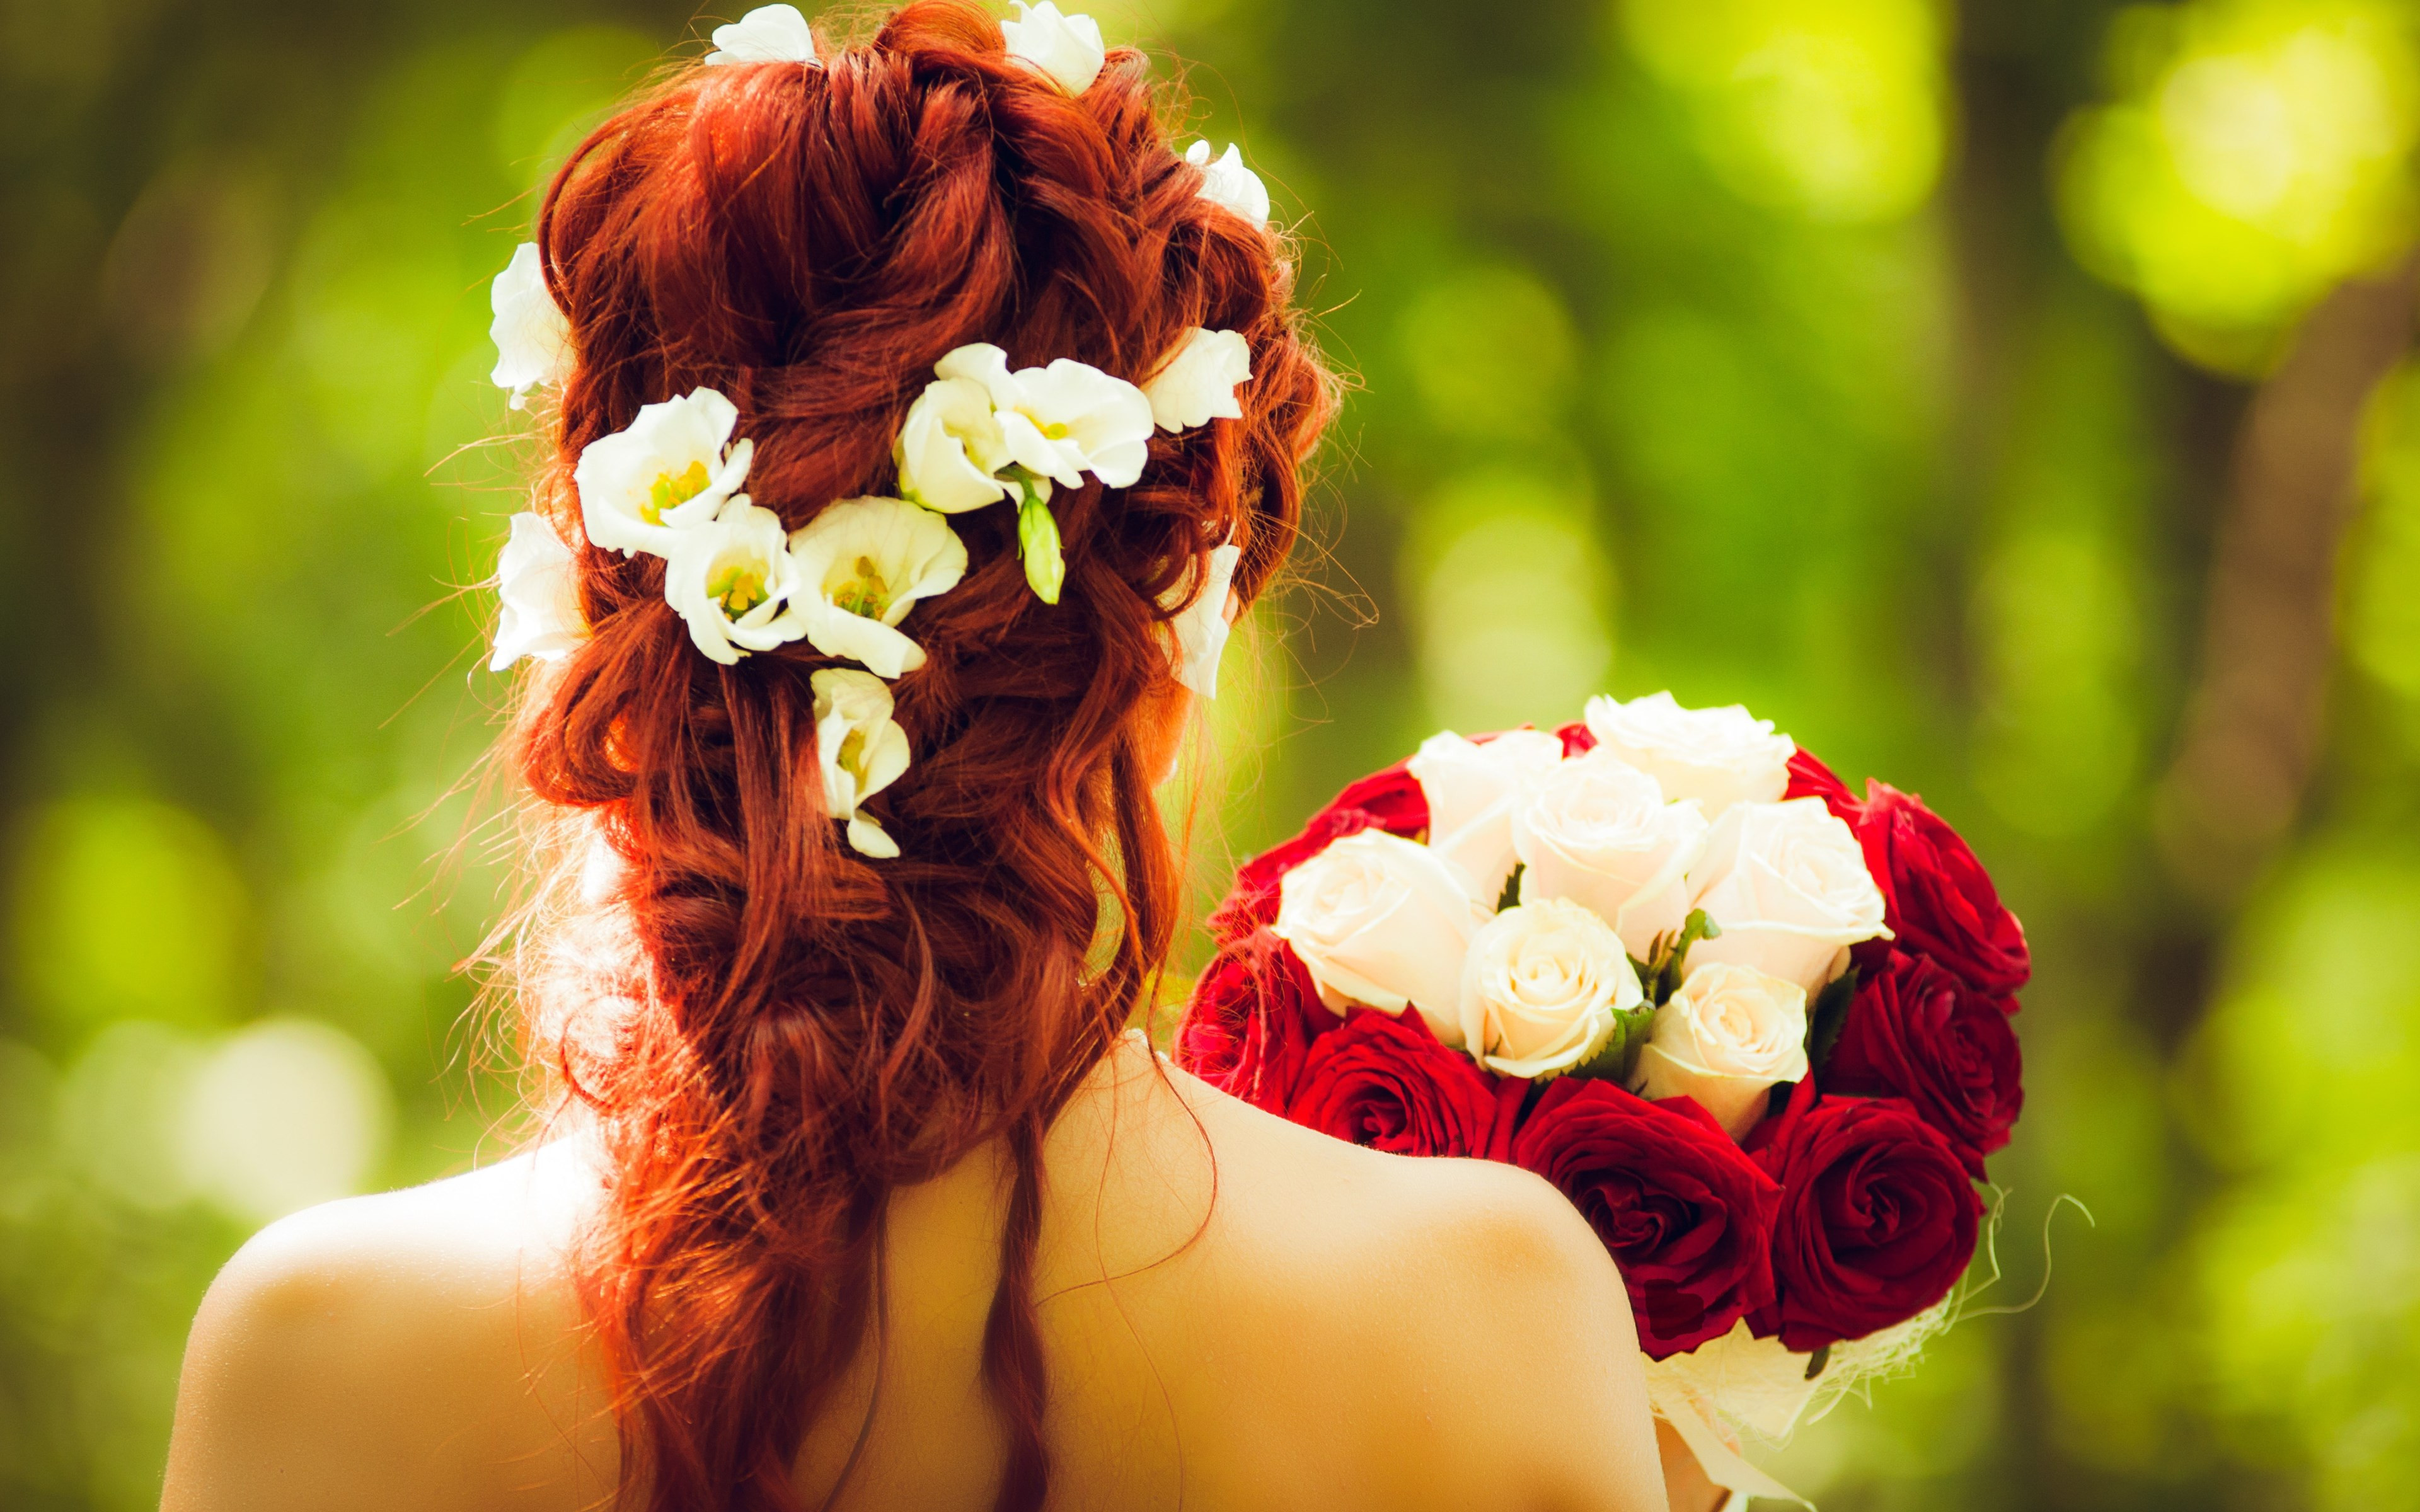 Bride and wedding flowers | 3840x2400 wallpaper